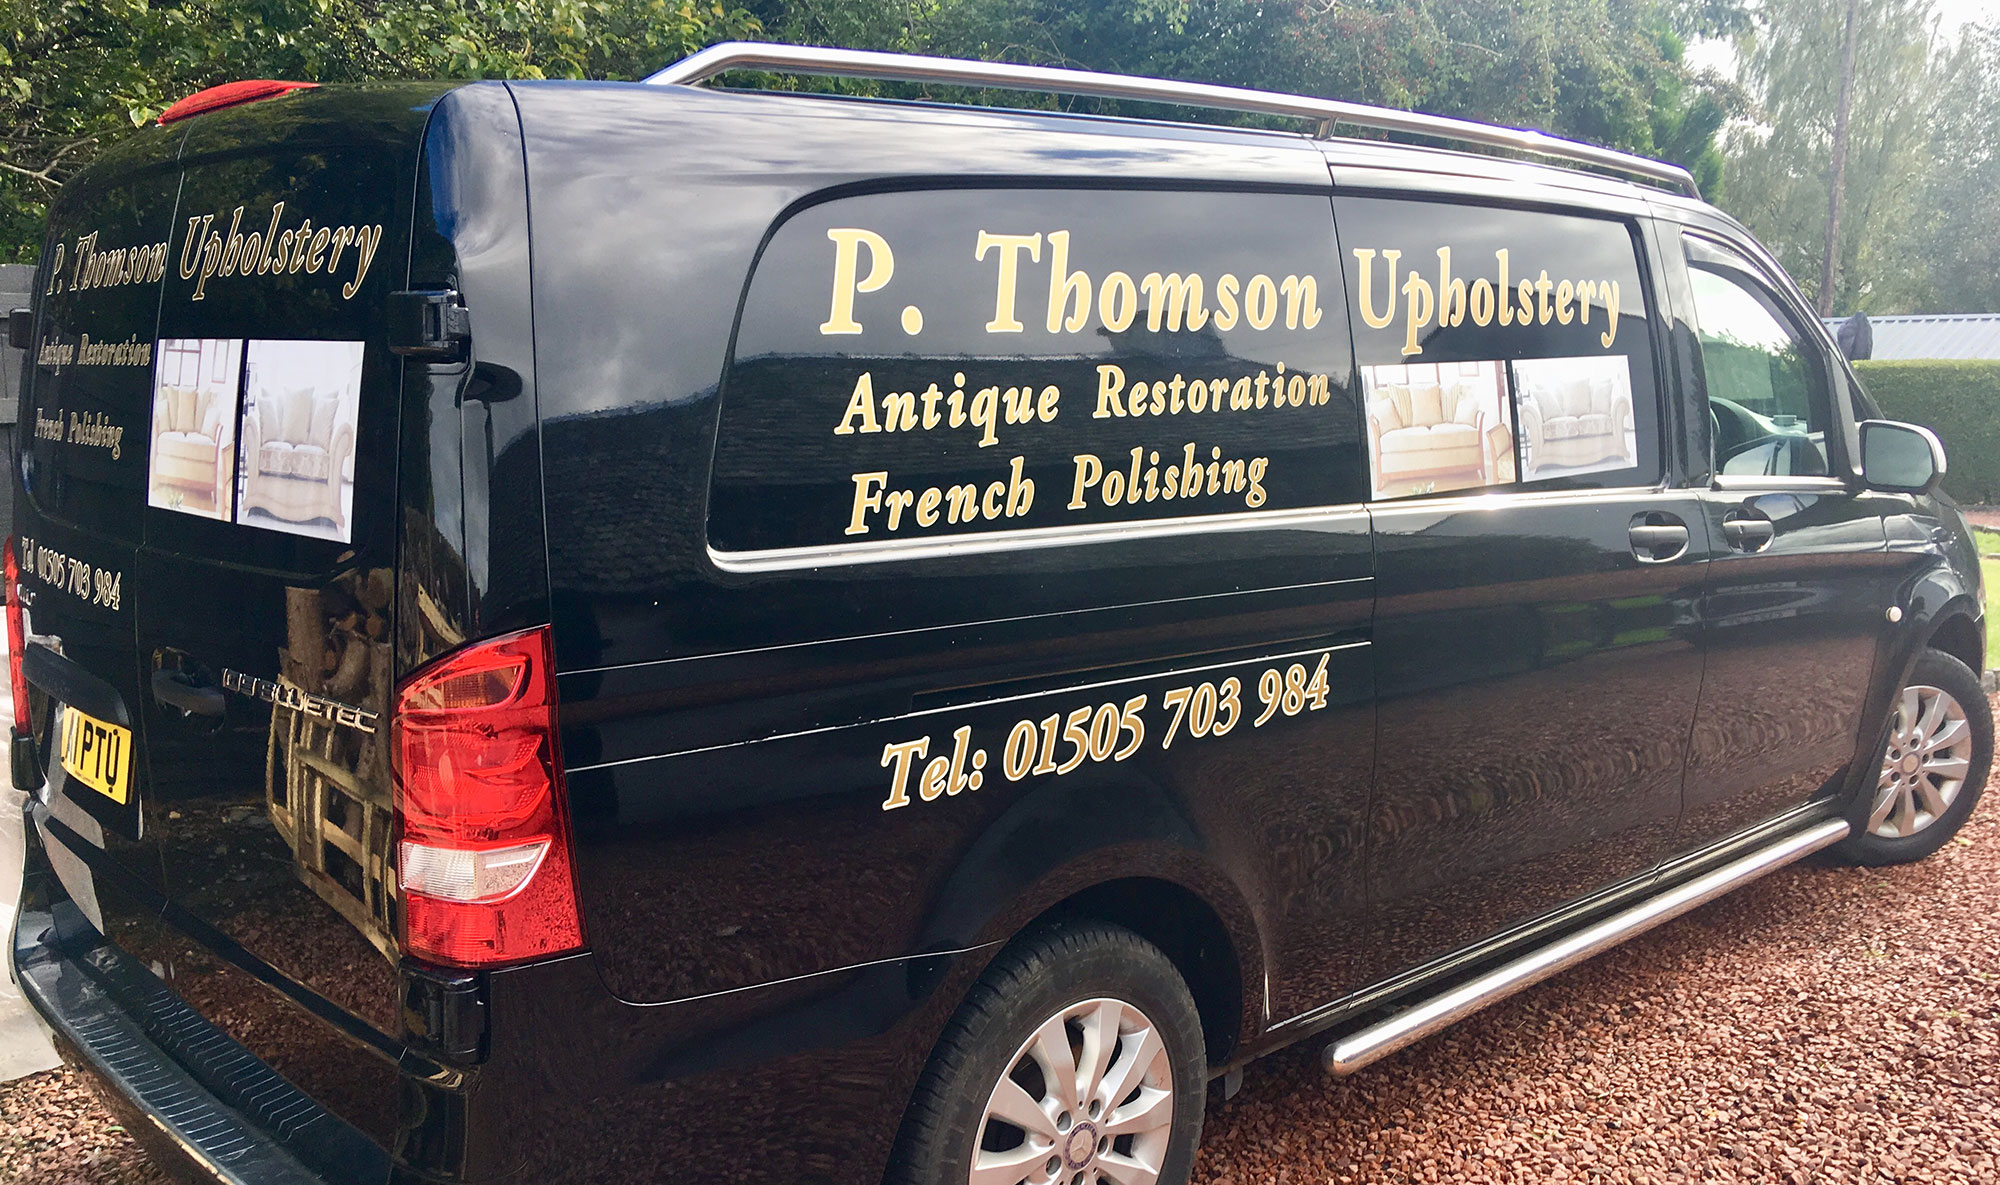 P. Thomson Upholstery: Upholstery, French Polishing and Antique Restoration